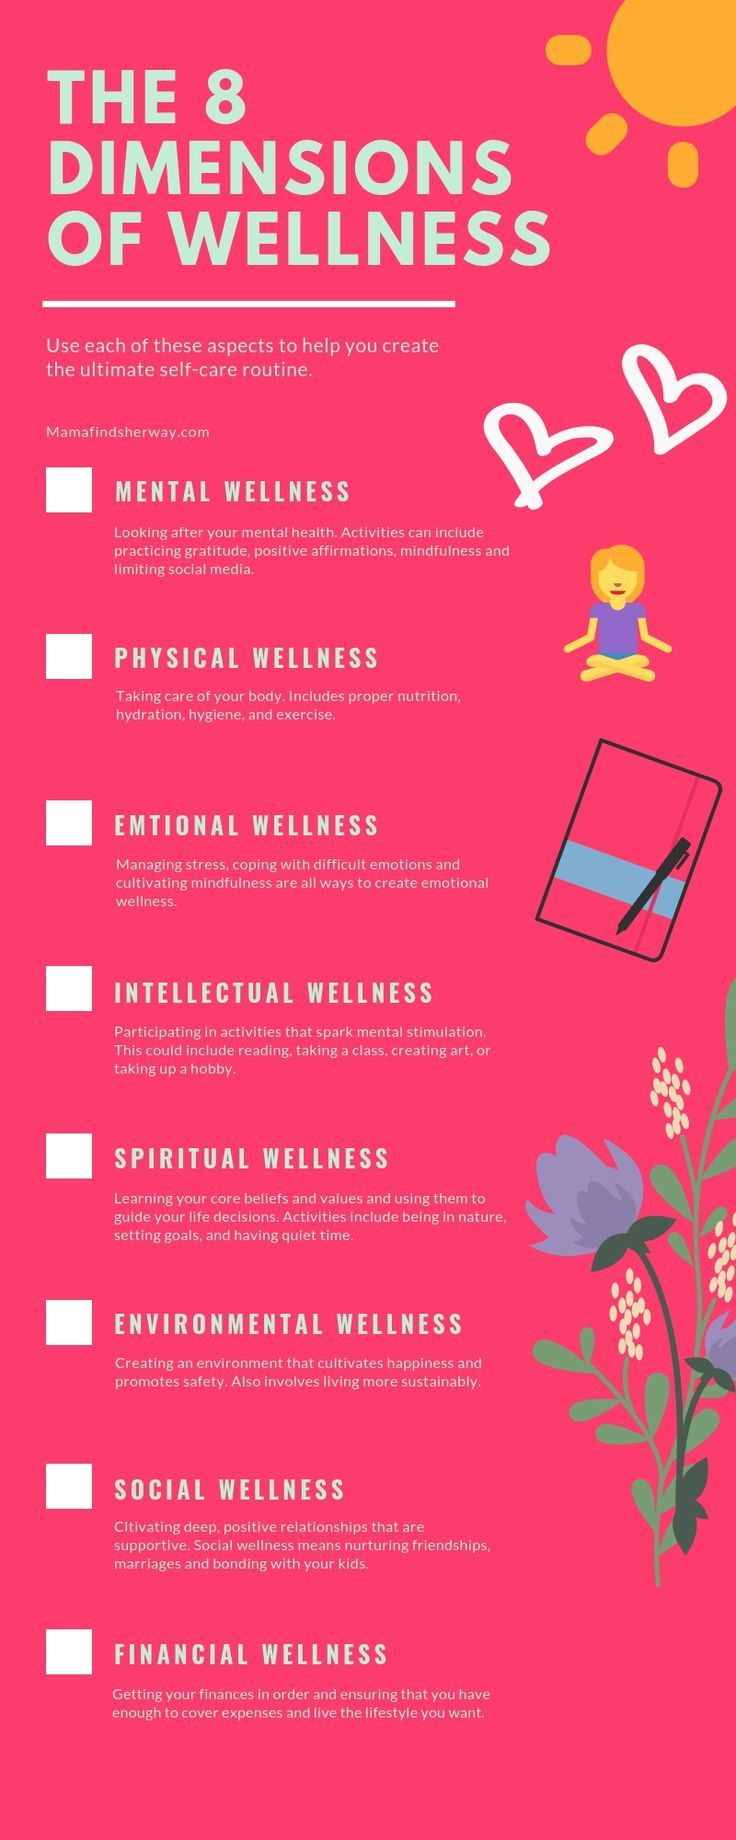 The 8 Dimensions Of Wellness Health Lifestyle Self Care Activities Healthy Living Lifestyle